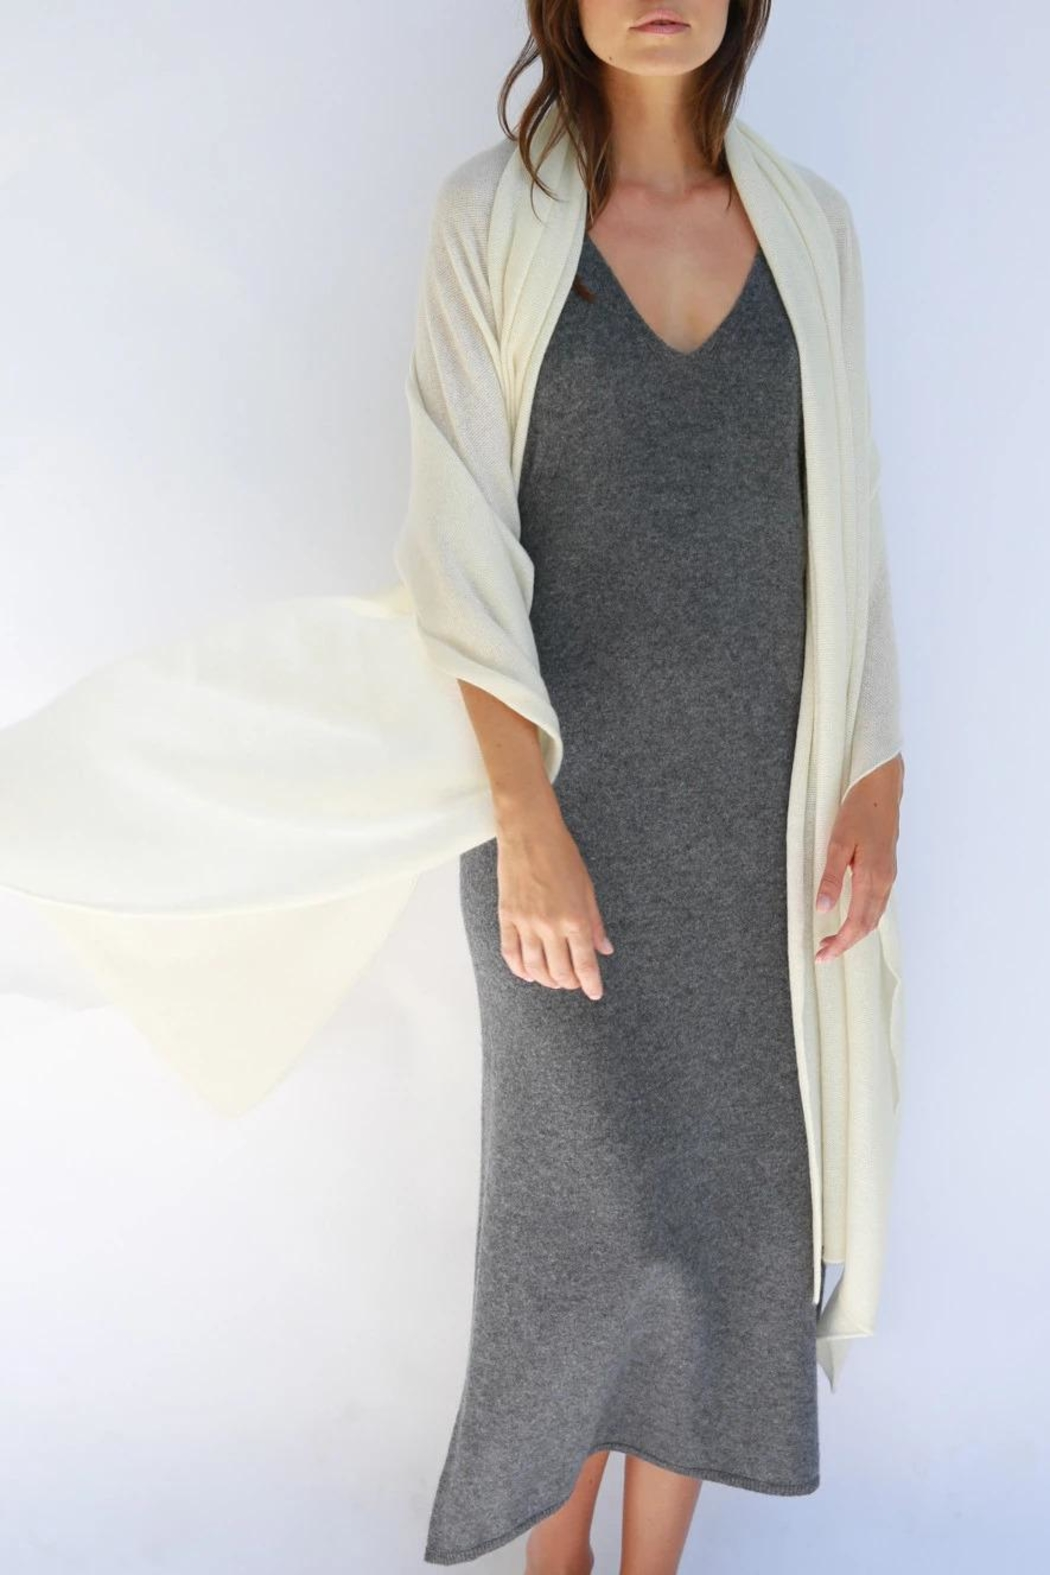 Oats Adele Cashmere Travel/wrap - Main Image